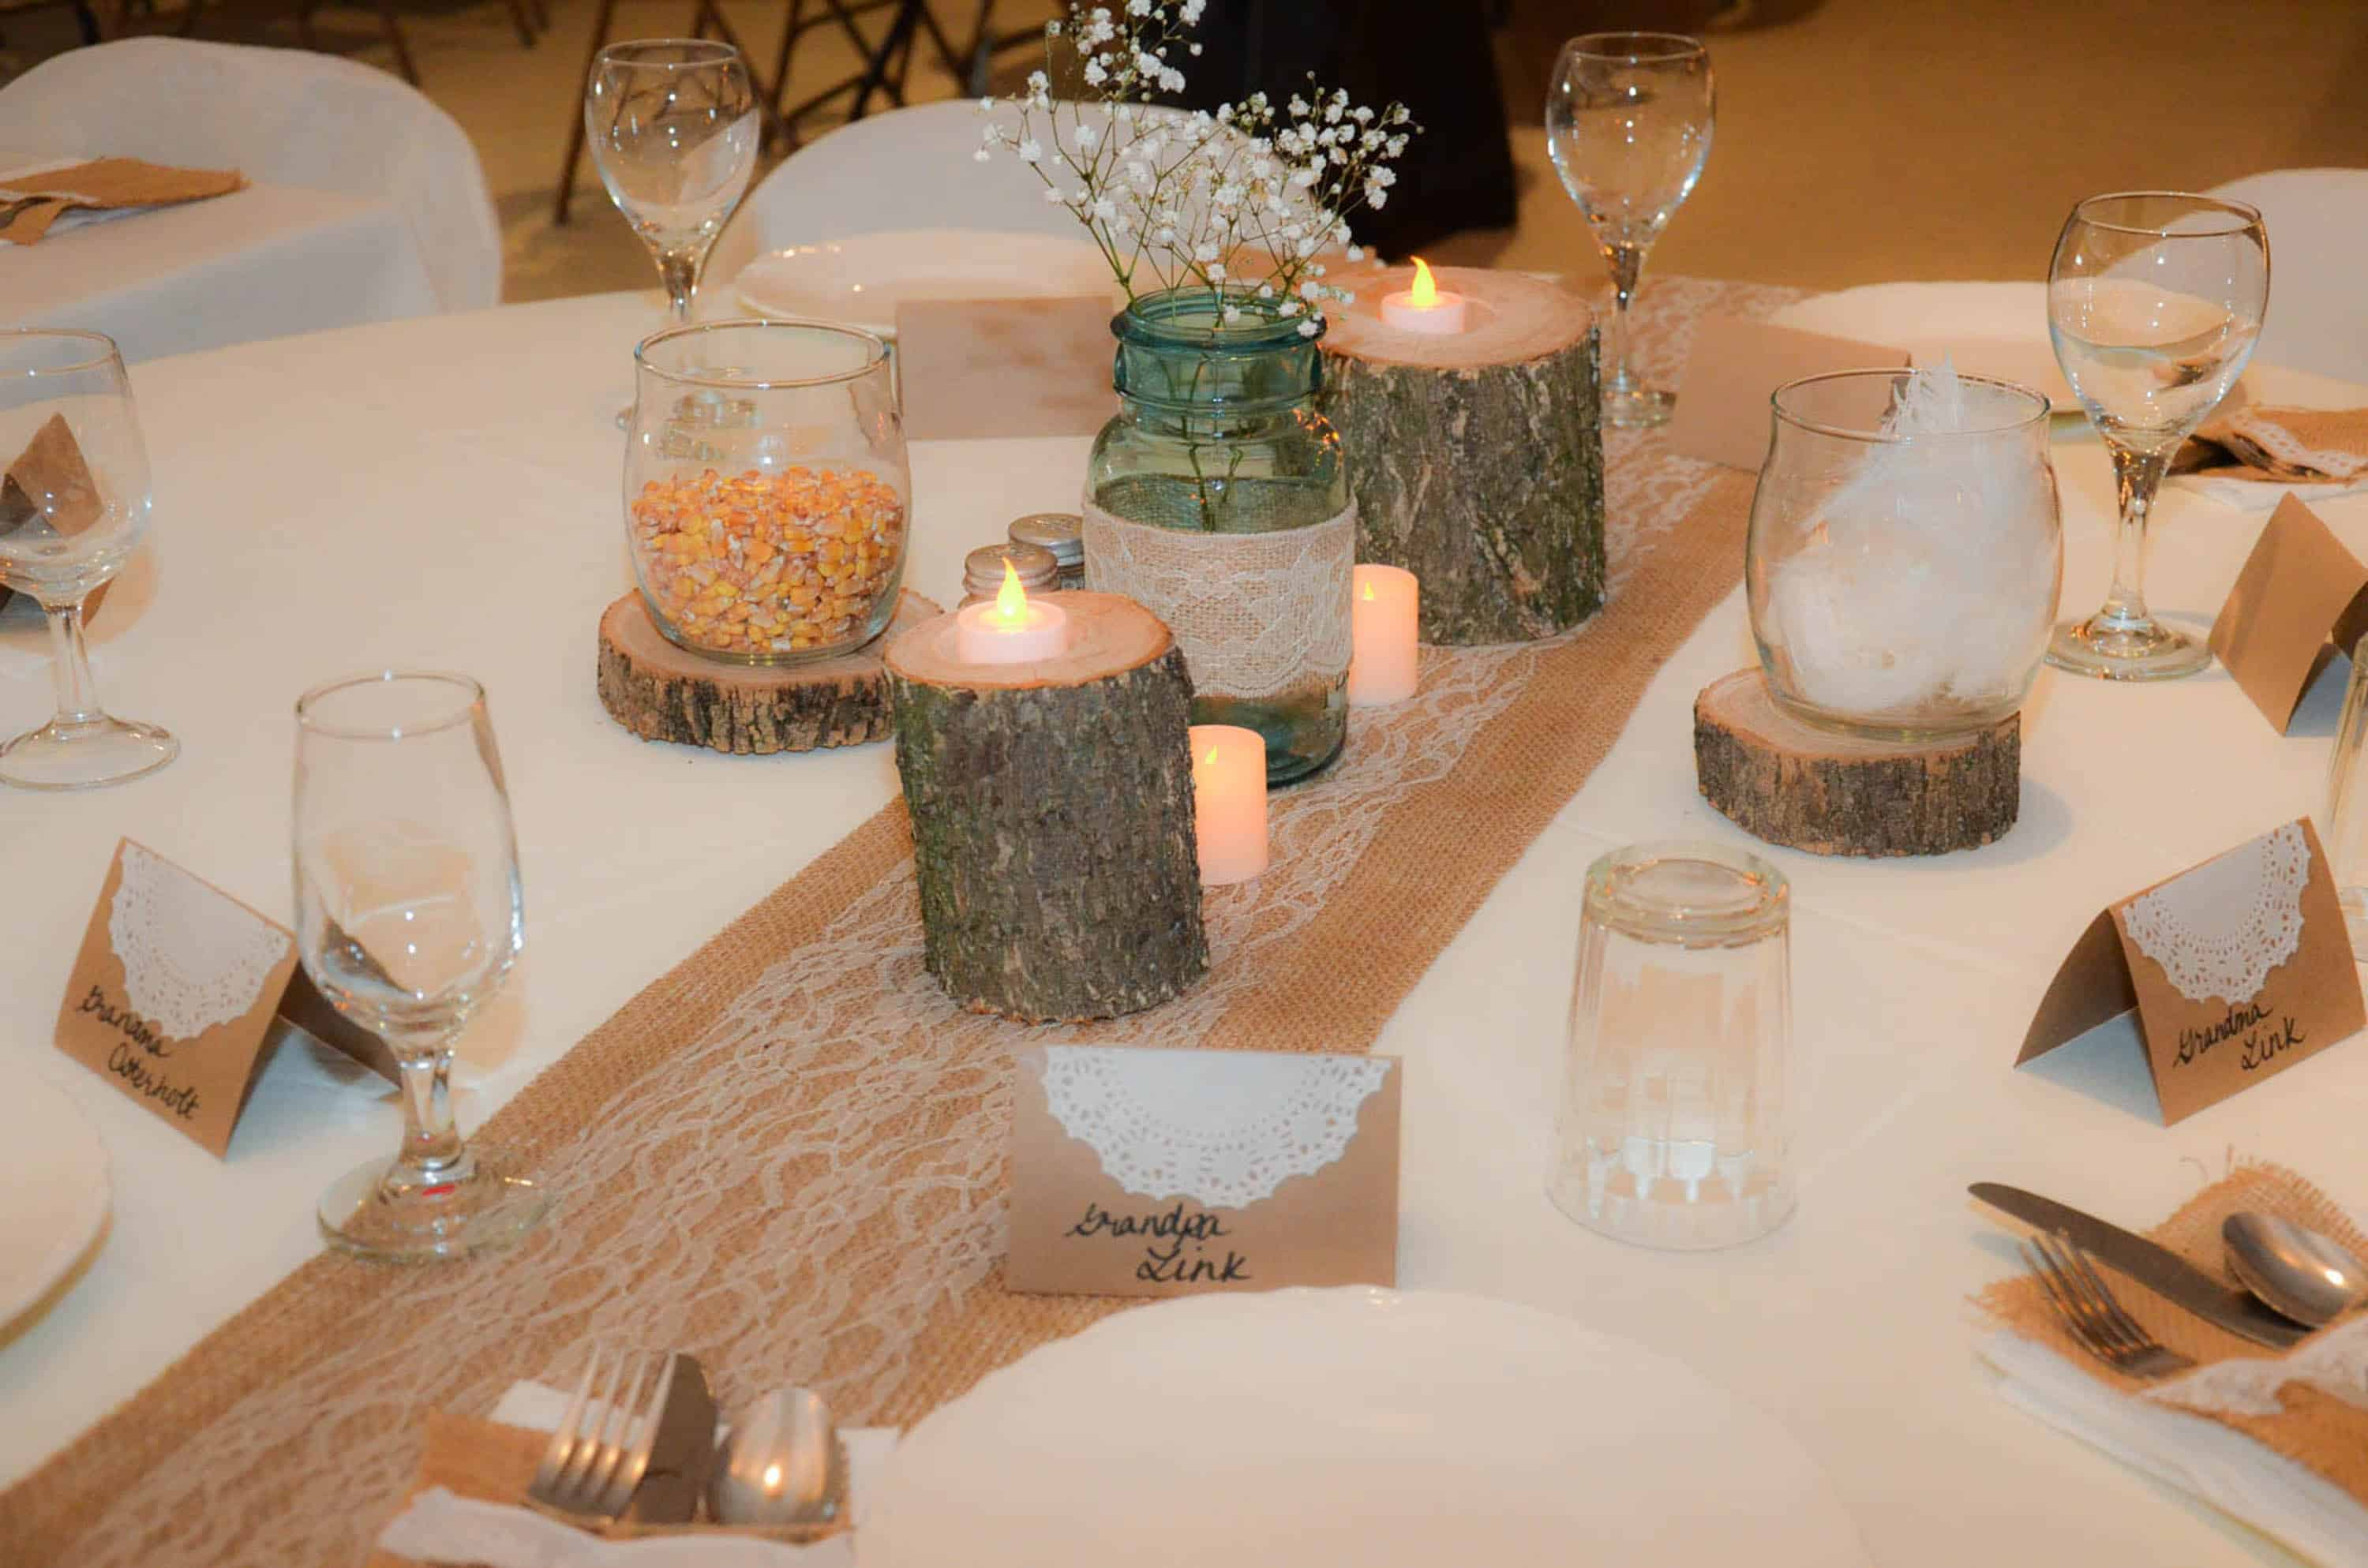 wedding table decorations to make burlap and lace country wedding decorations plowing 1185